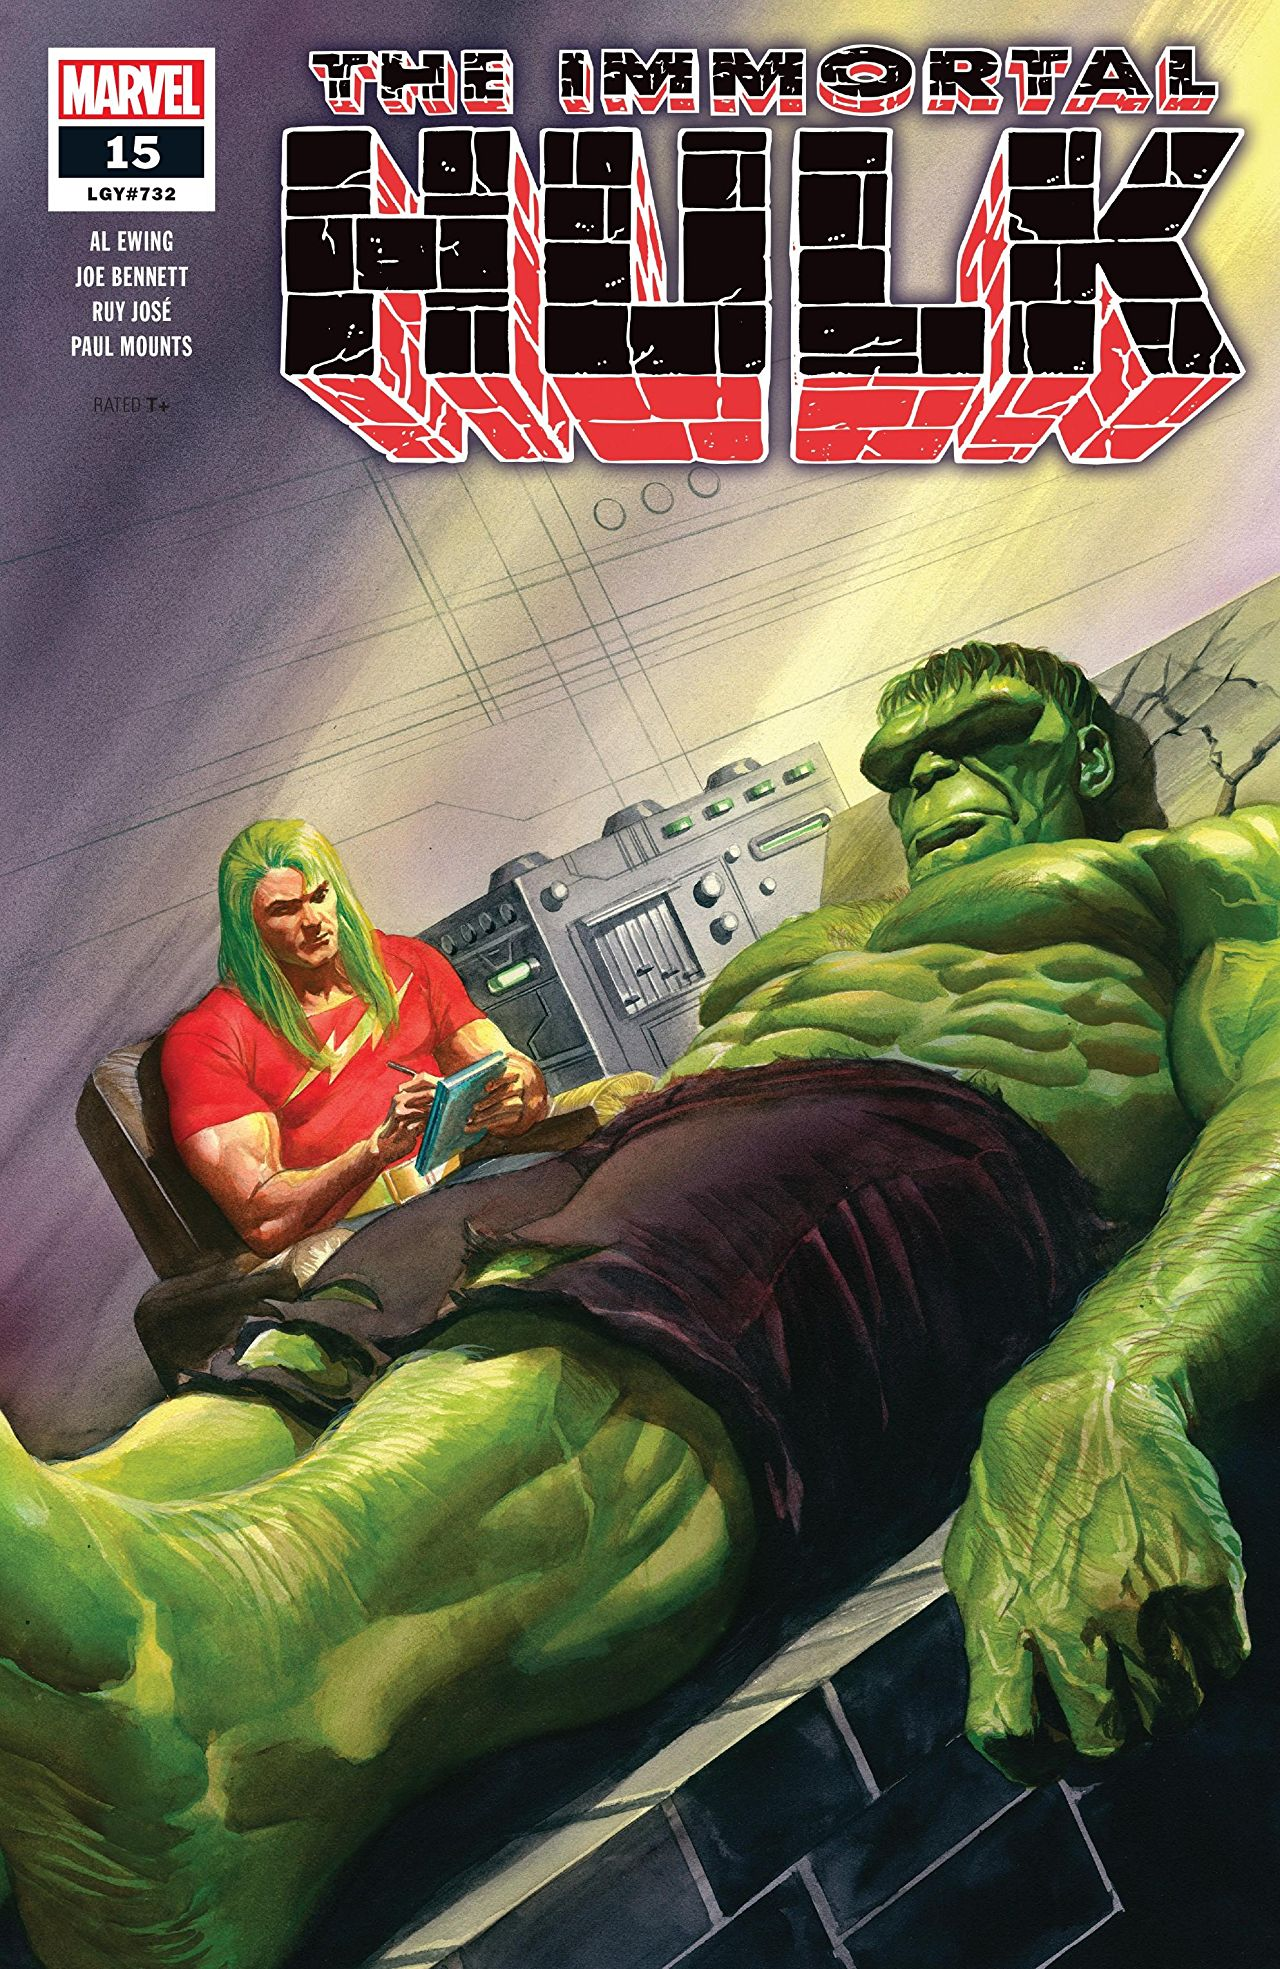 Marvel Preview: Immortal Hulk #15